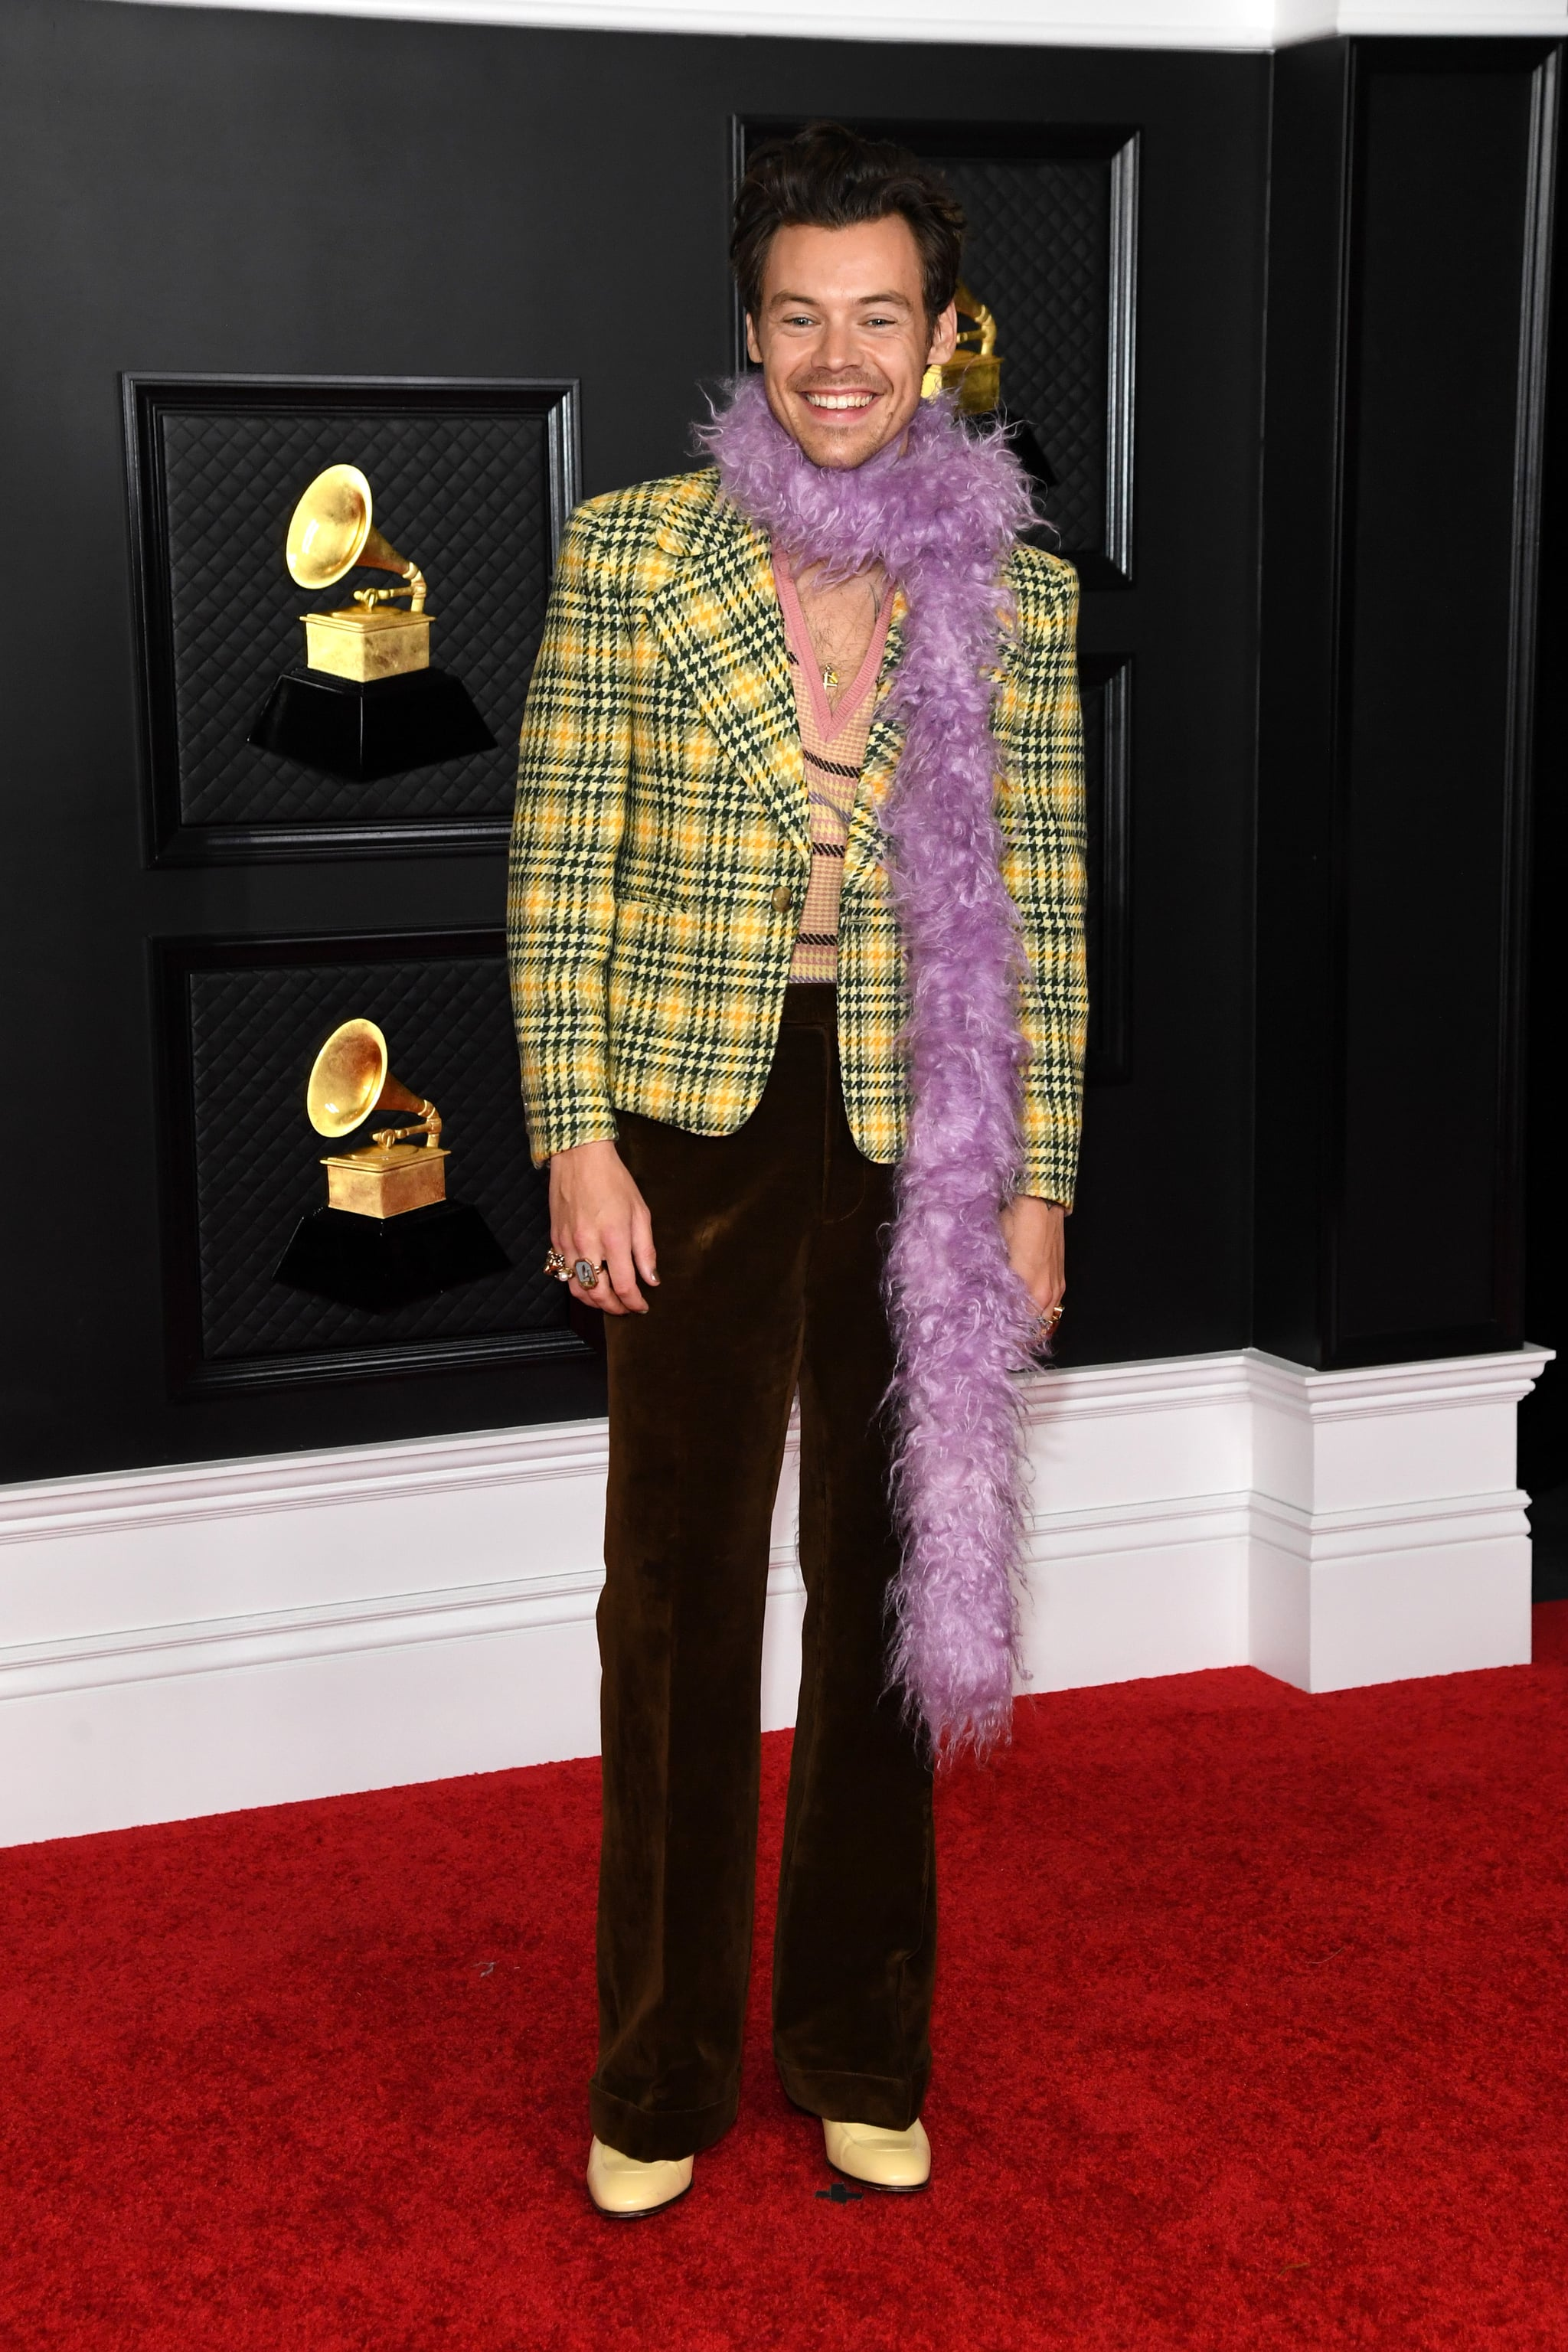 2021 Grammy Awards: See all the Fashion From the Red Carpet | POPSUGAR Fashion